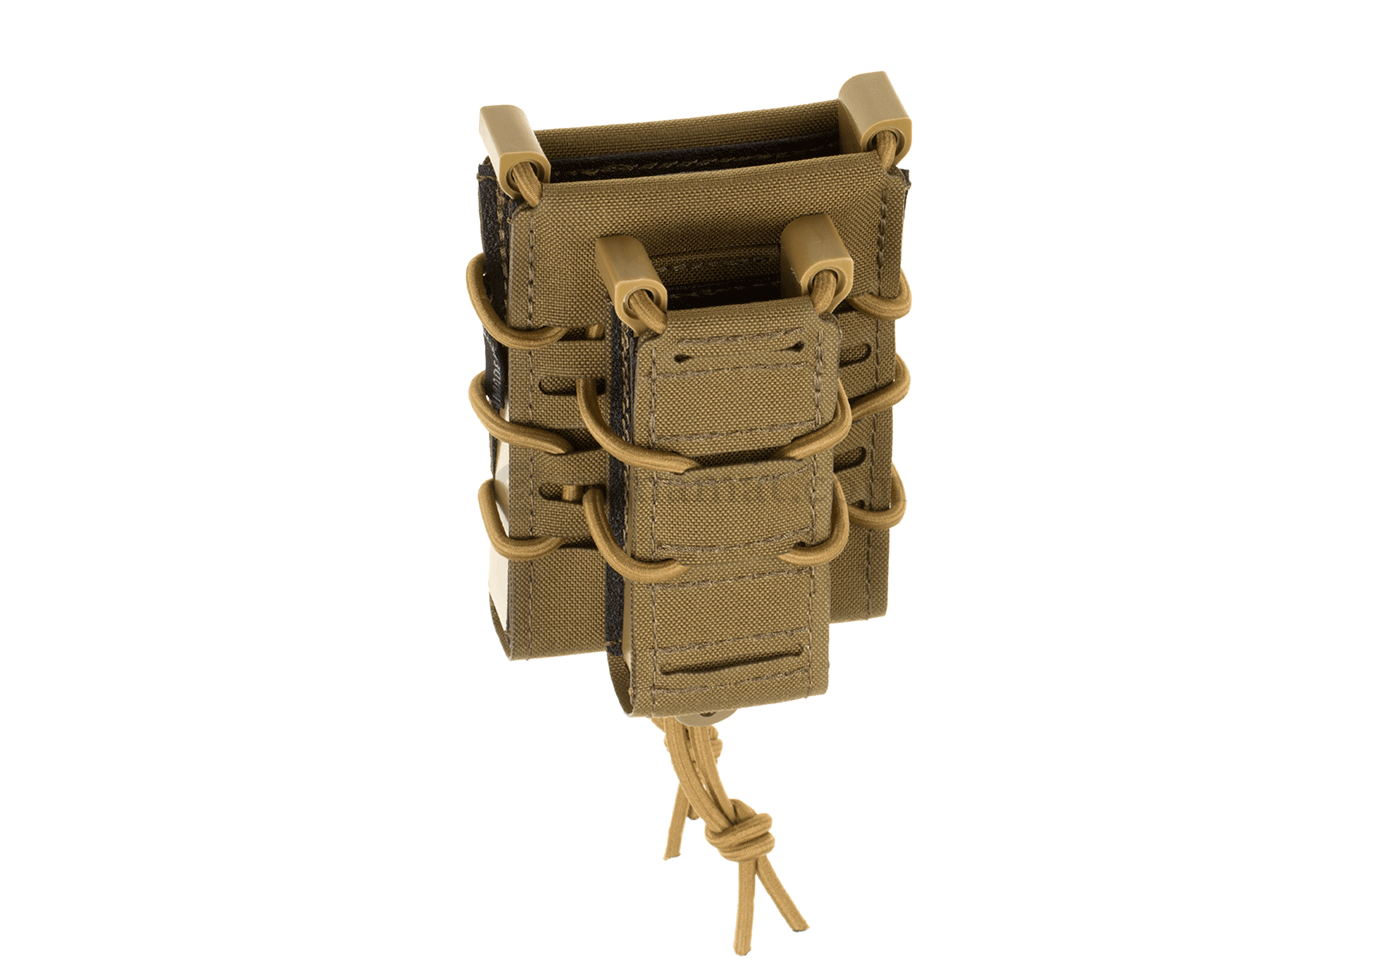 Templar's Gear Fast Rifle and Pistol Magazine Pouch